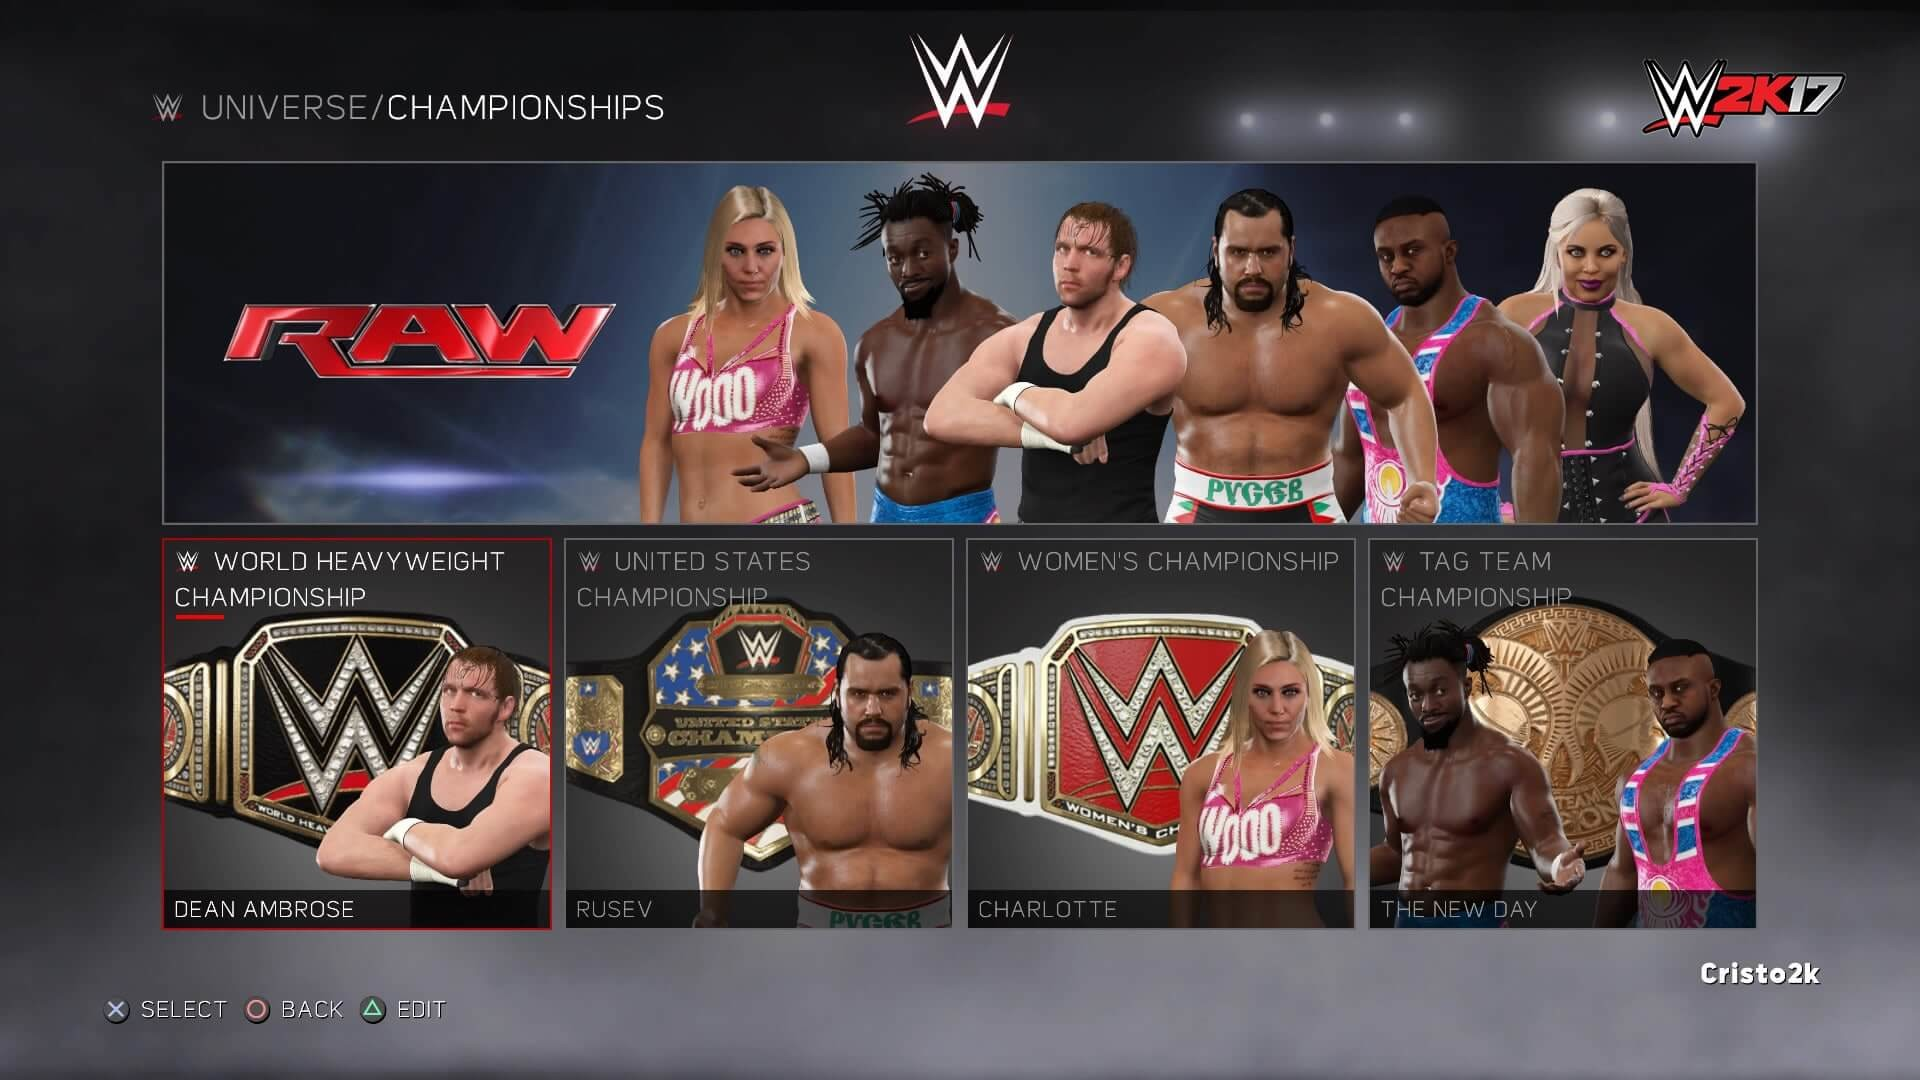 MASSIVE WWE 2K17 Universe Mode Reveal! All The Details! – WWE 2K17 Coverage  – News & Updates